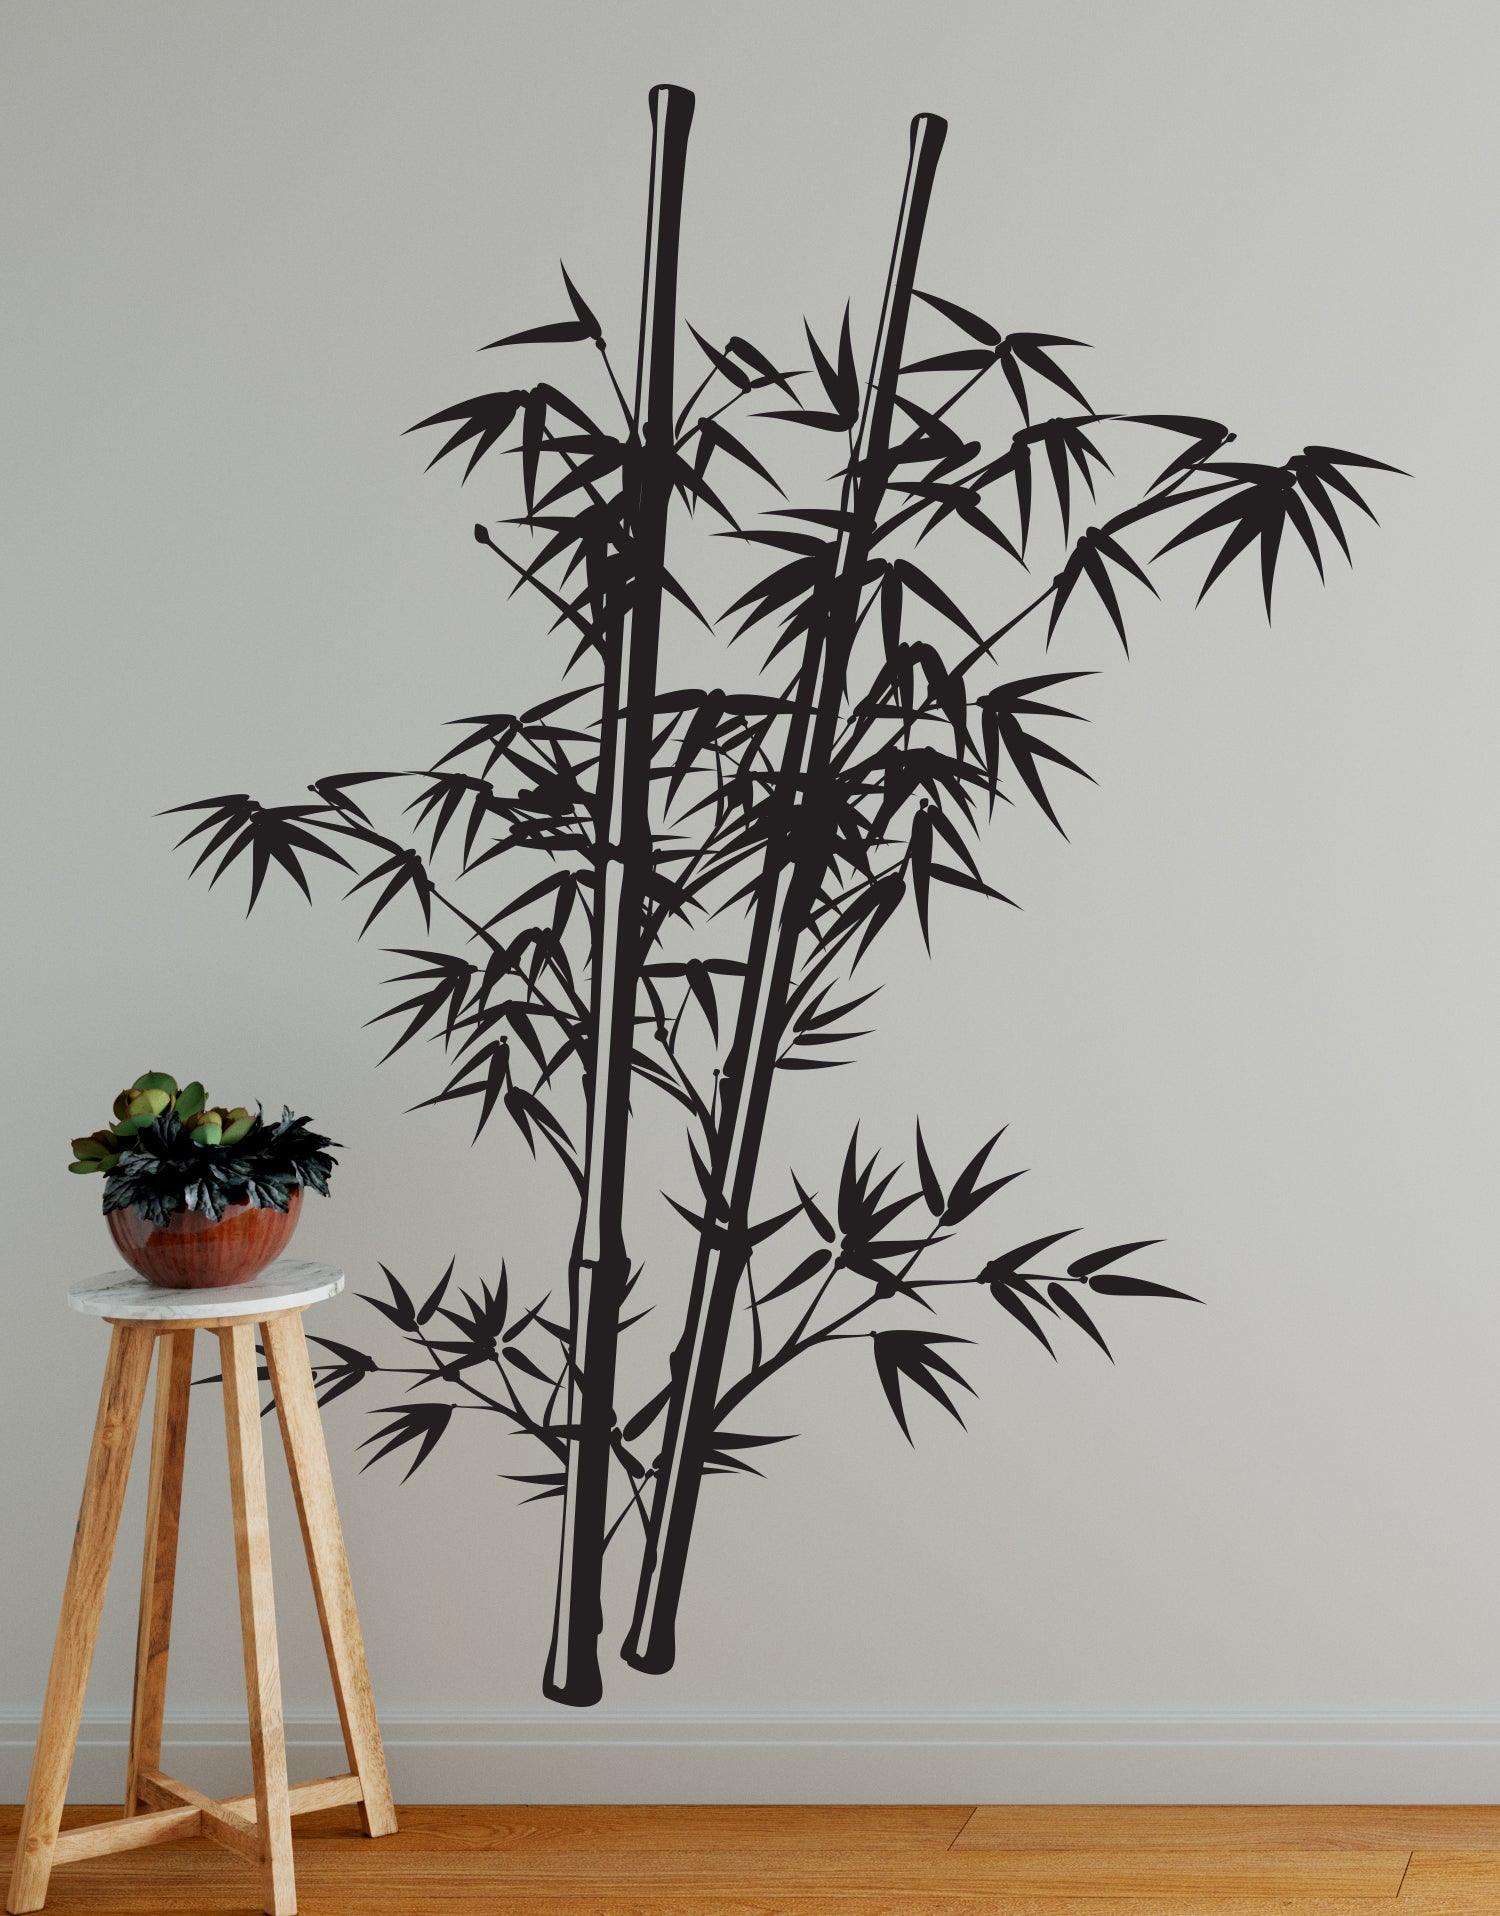 Chinese Bamboo Tree Wall Decal By Stickerbrand